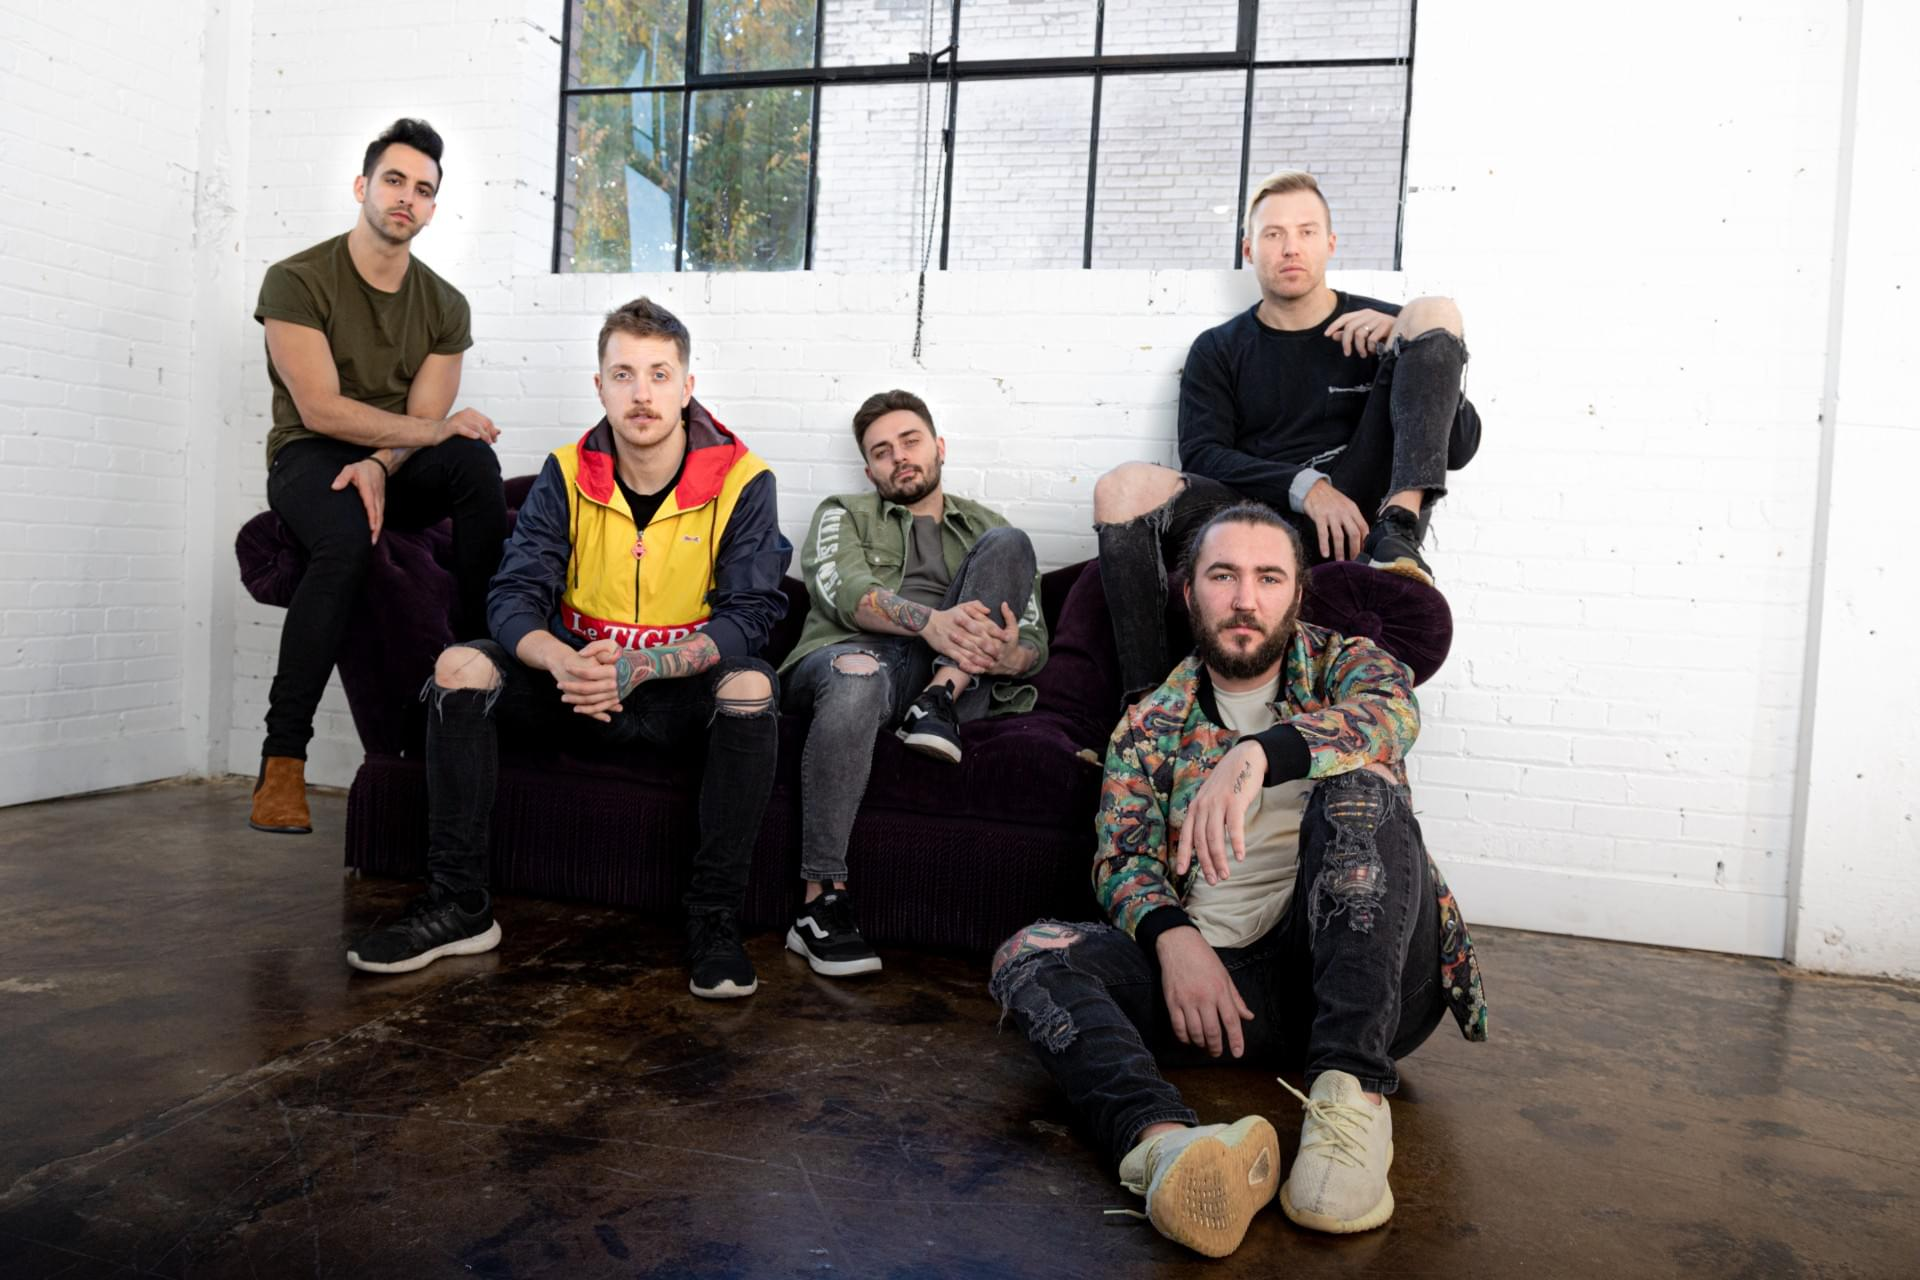 I Prevail's Eric Vanlerberghe Discusses Latest Single, Drive-In Shows, and More [VIDEO]